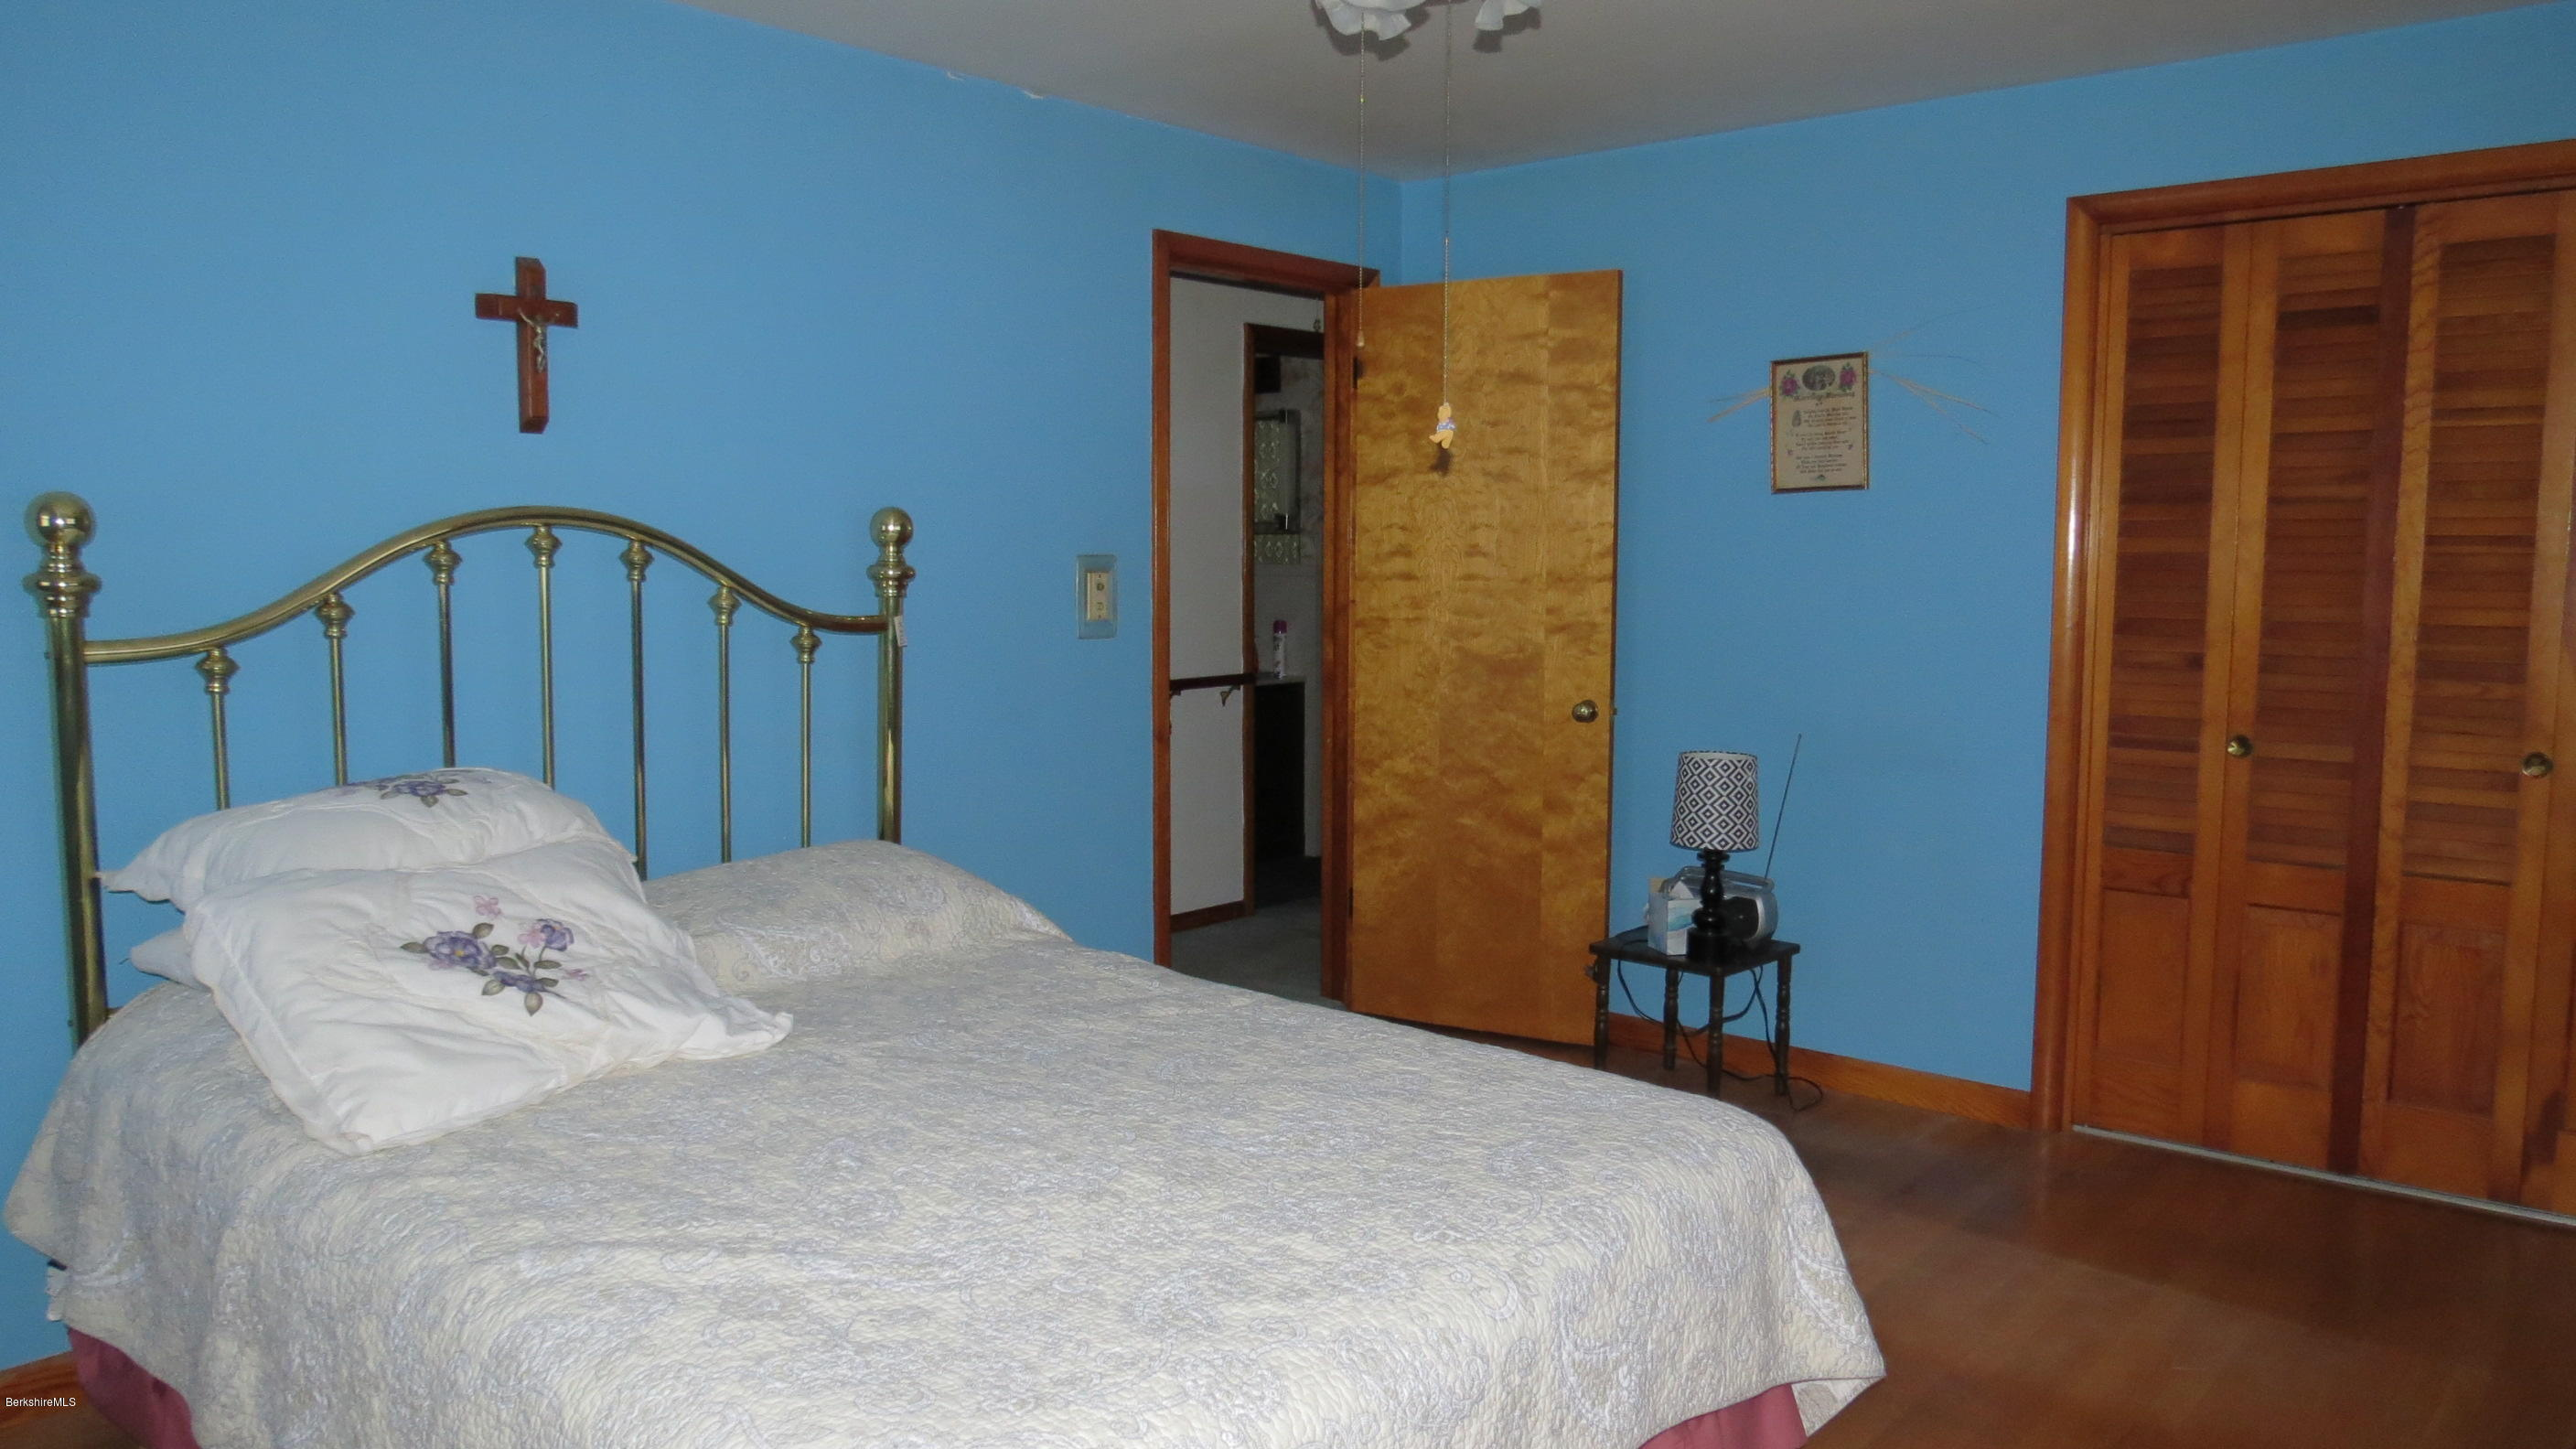 120 Friend St, Adams, MA 01220 (MLS# 221568) - At Home In The Berkshires